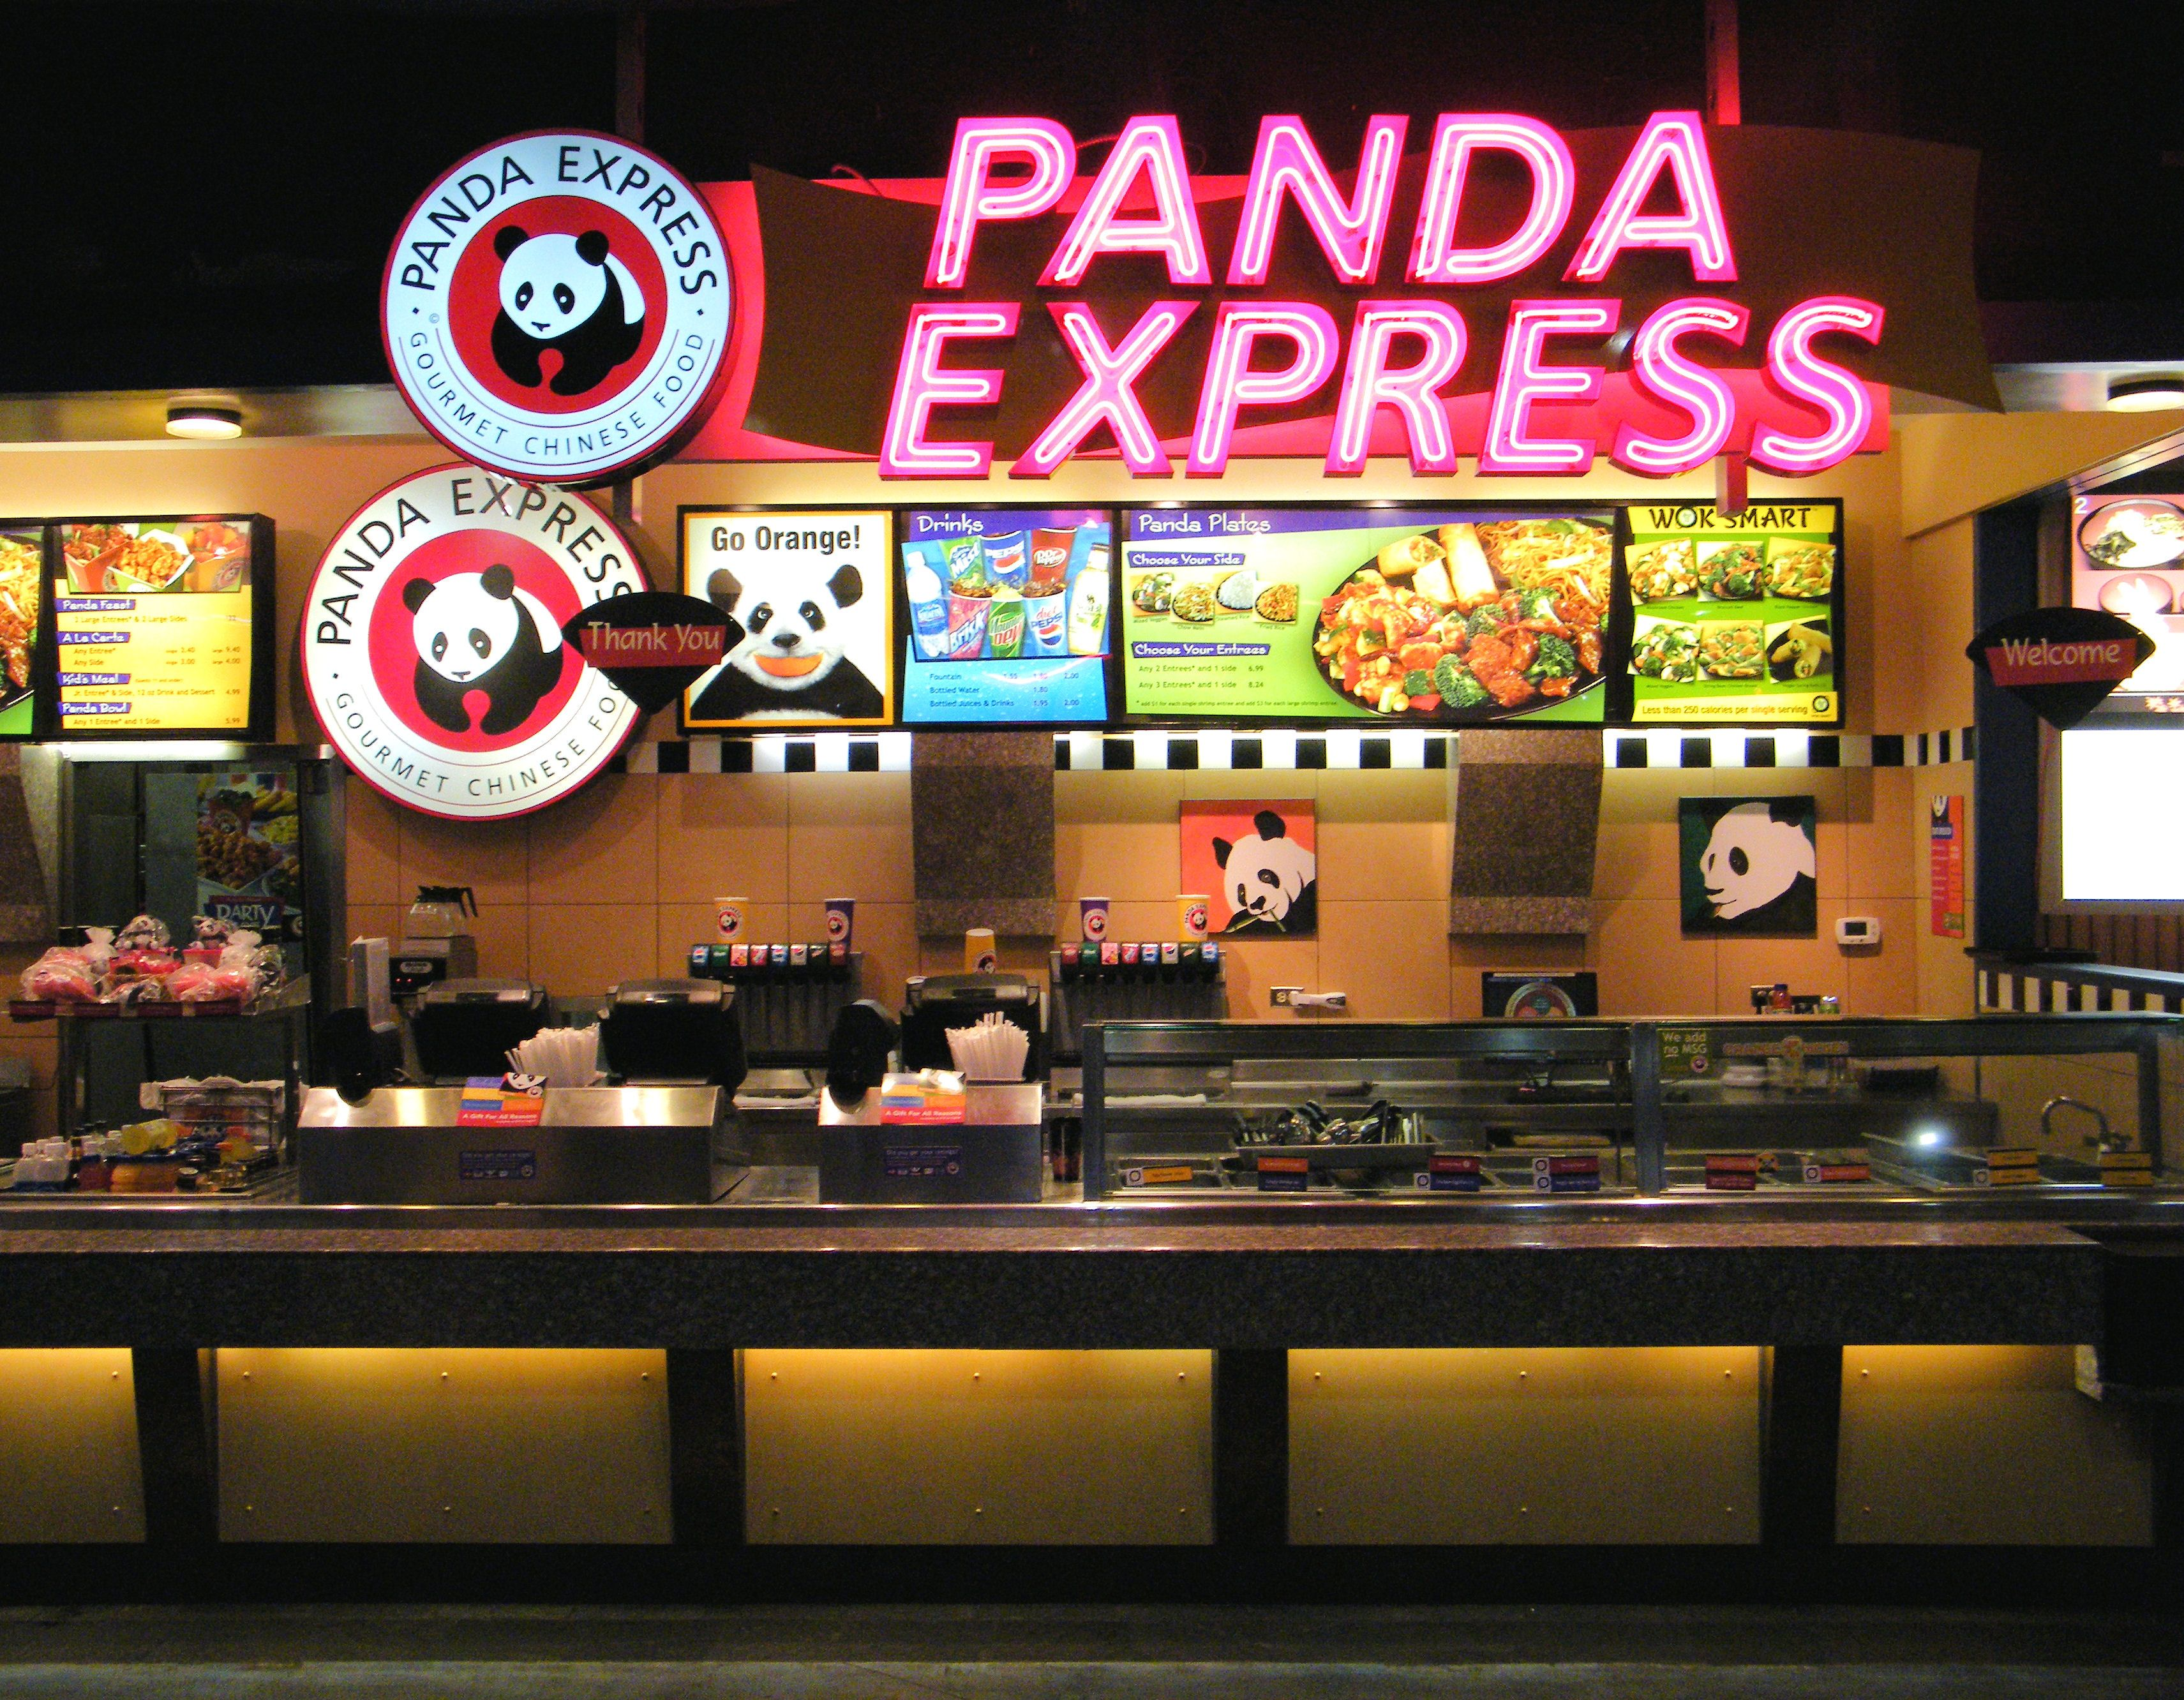 Panda Express Wikipedia The Free Encyclopedia Panda Express Keto Fast Food Fast Food Restaurant